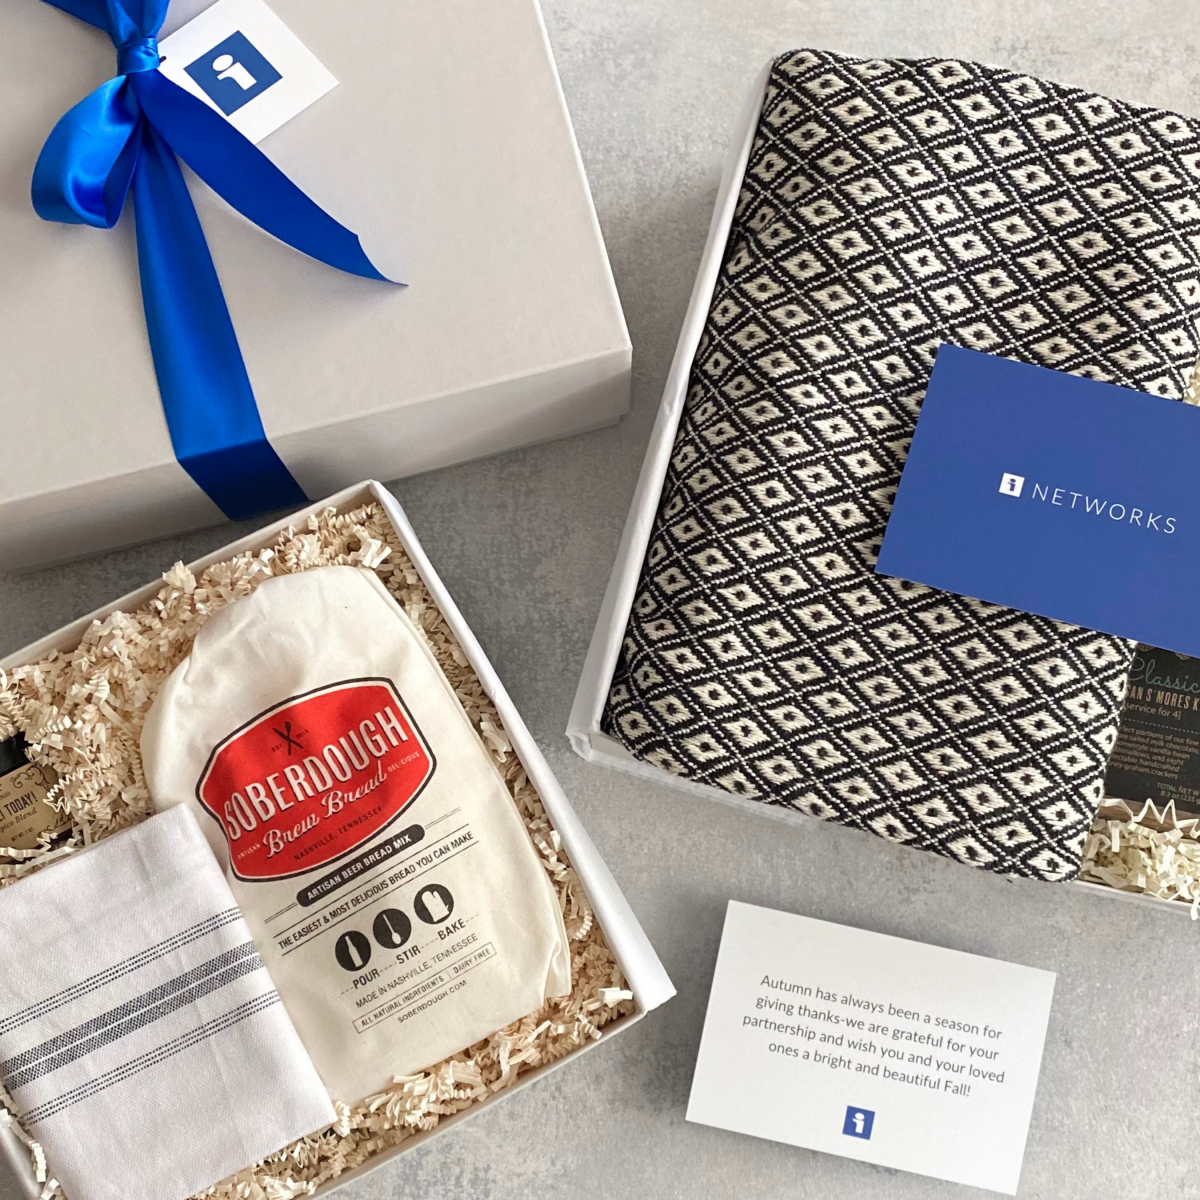 Corporate Gift Boxes For Clients- ITN Networks Chili